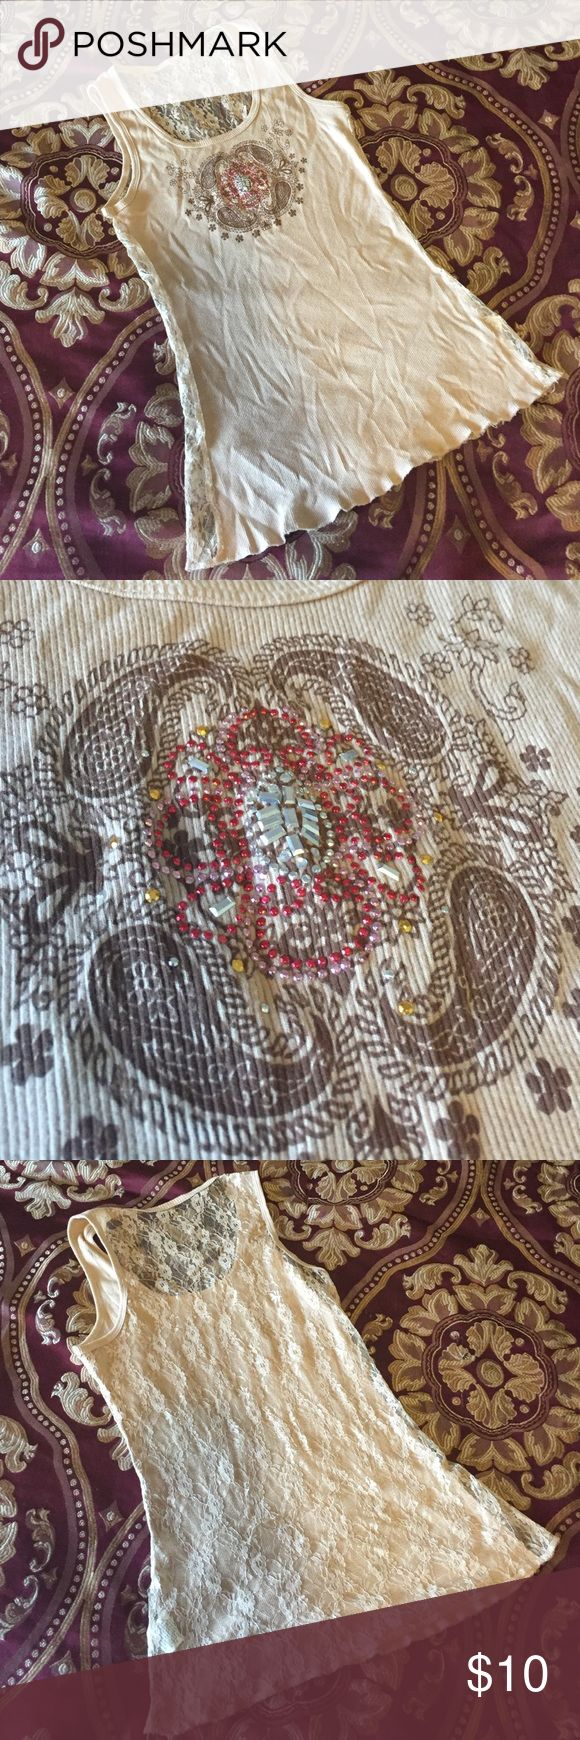 Lace back embellished jewel tan and red tank Good used condition bundle and save!! Tops Tank Tops